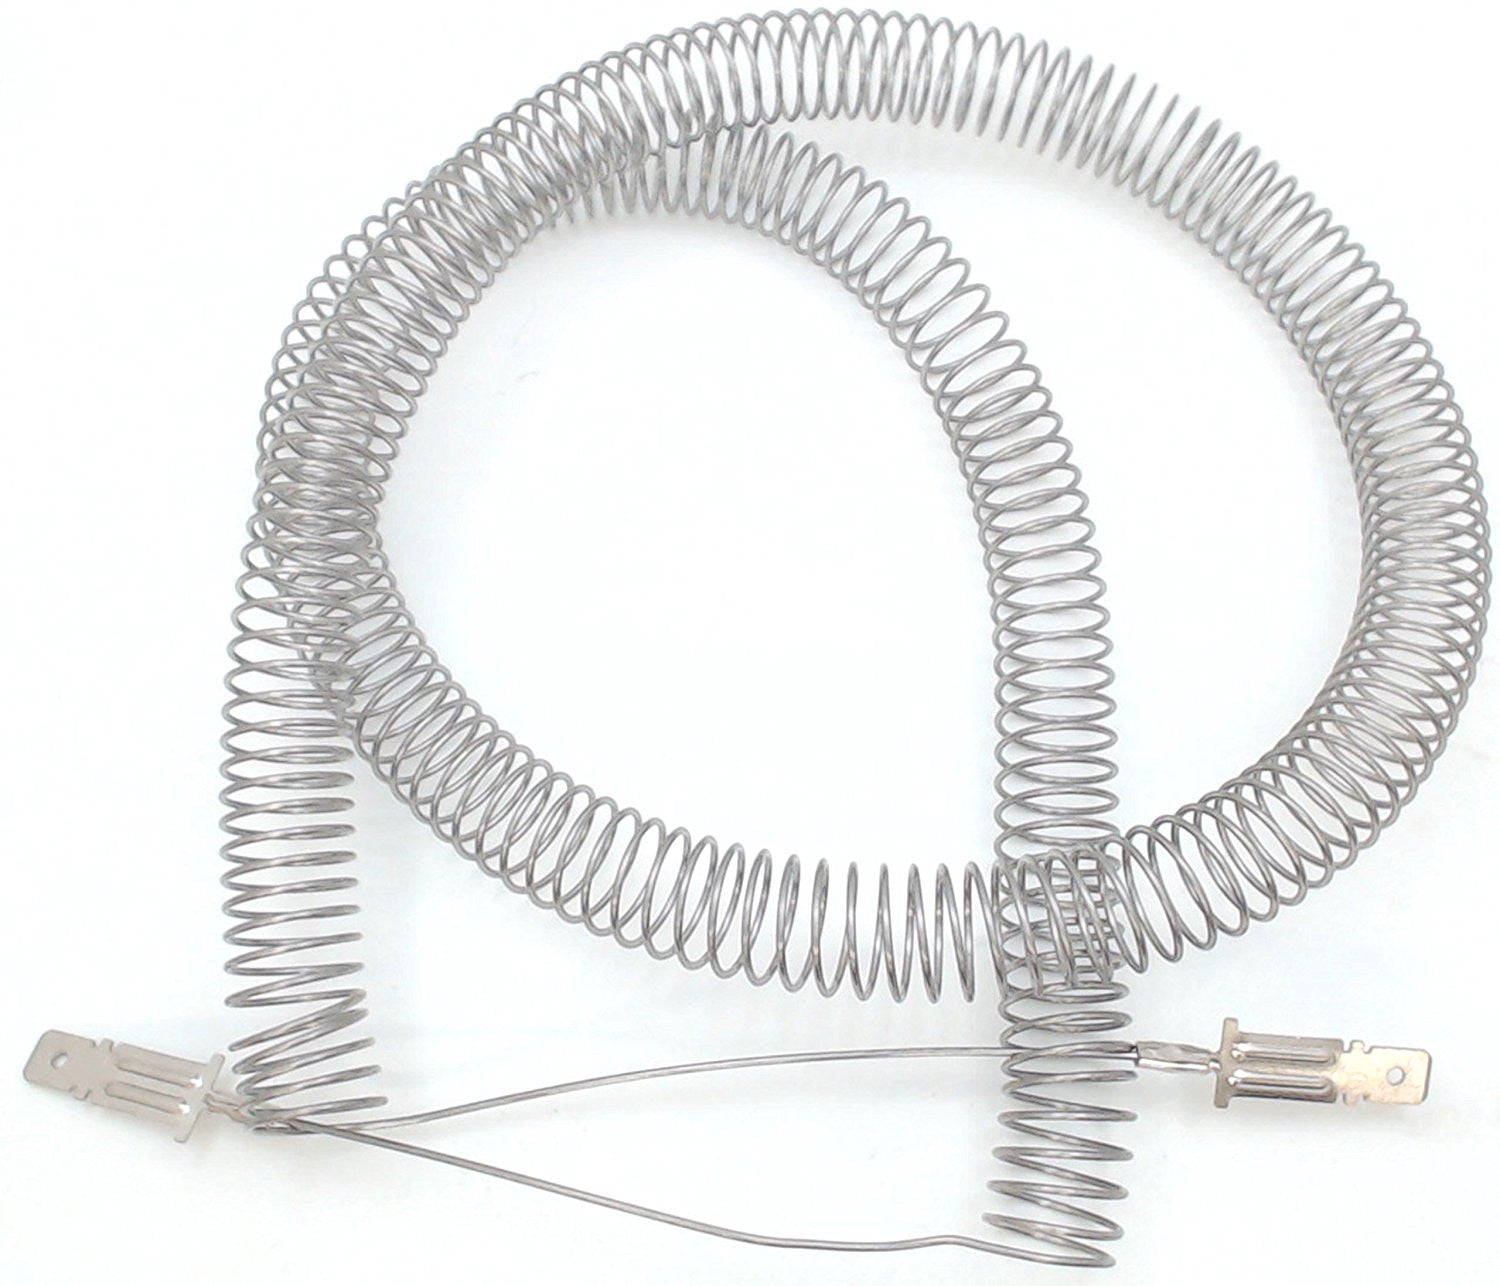 Frigidaire TDE546RBW1 Electric Dryer Heating Element Replacement